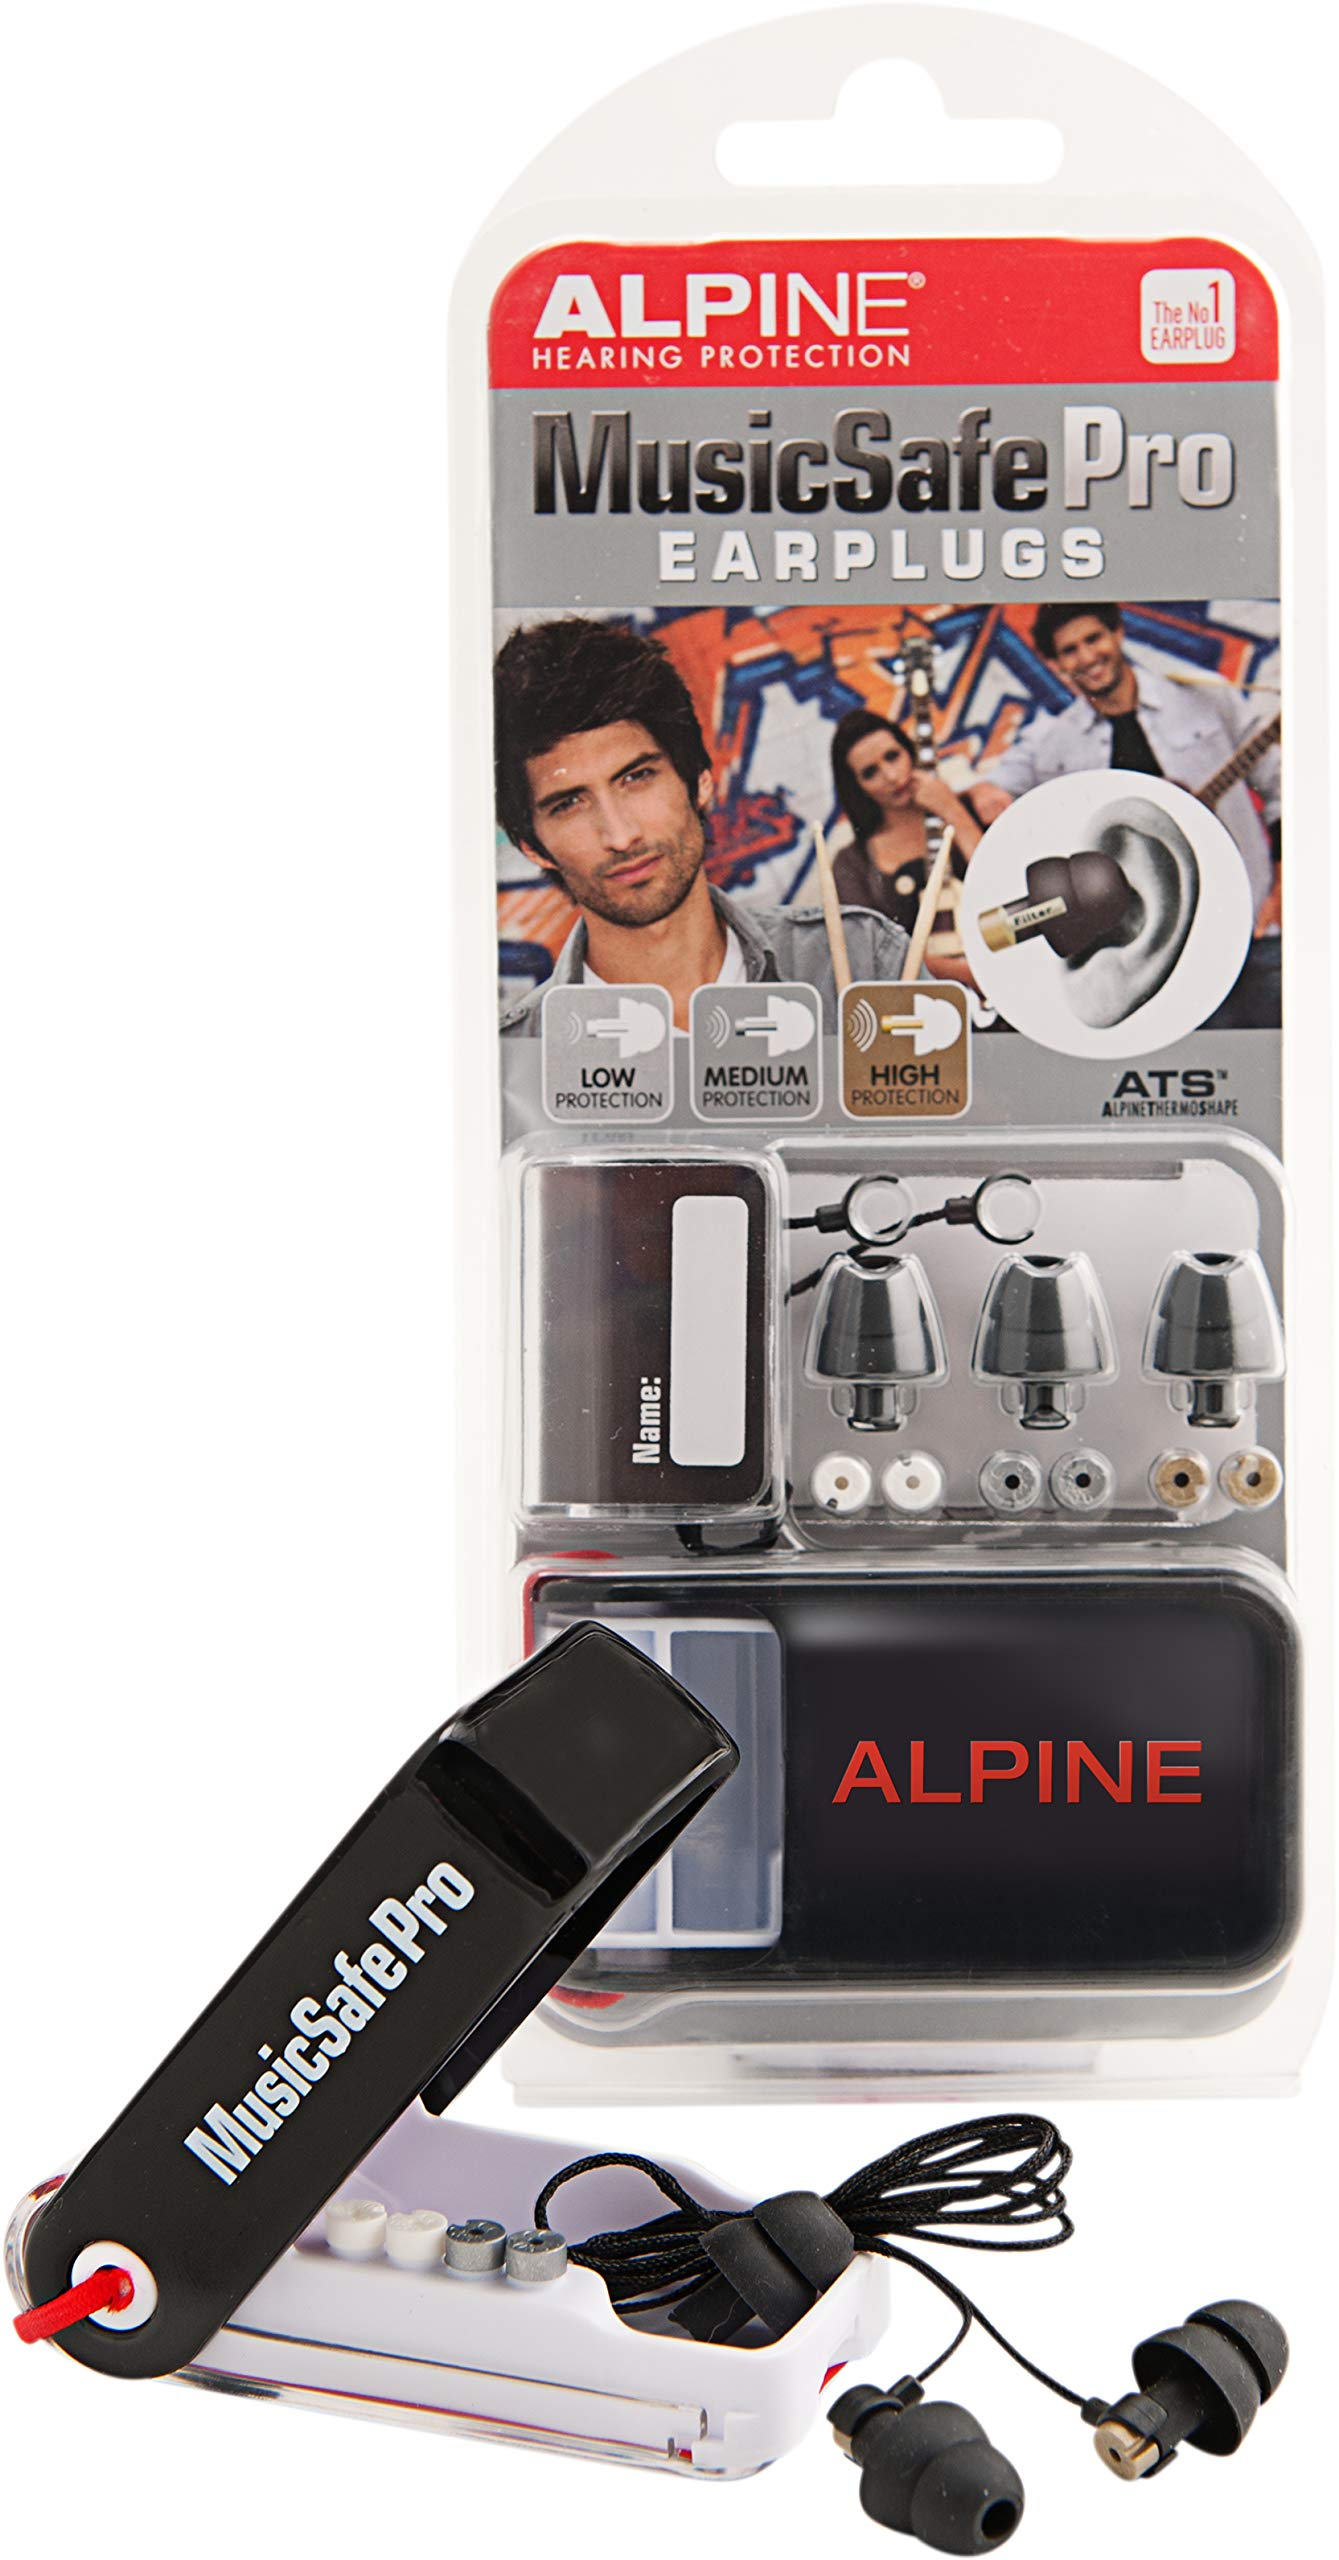 Alpine MusicSafe Pro Hearing Protection System for Musicians, Black